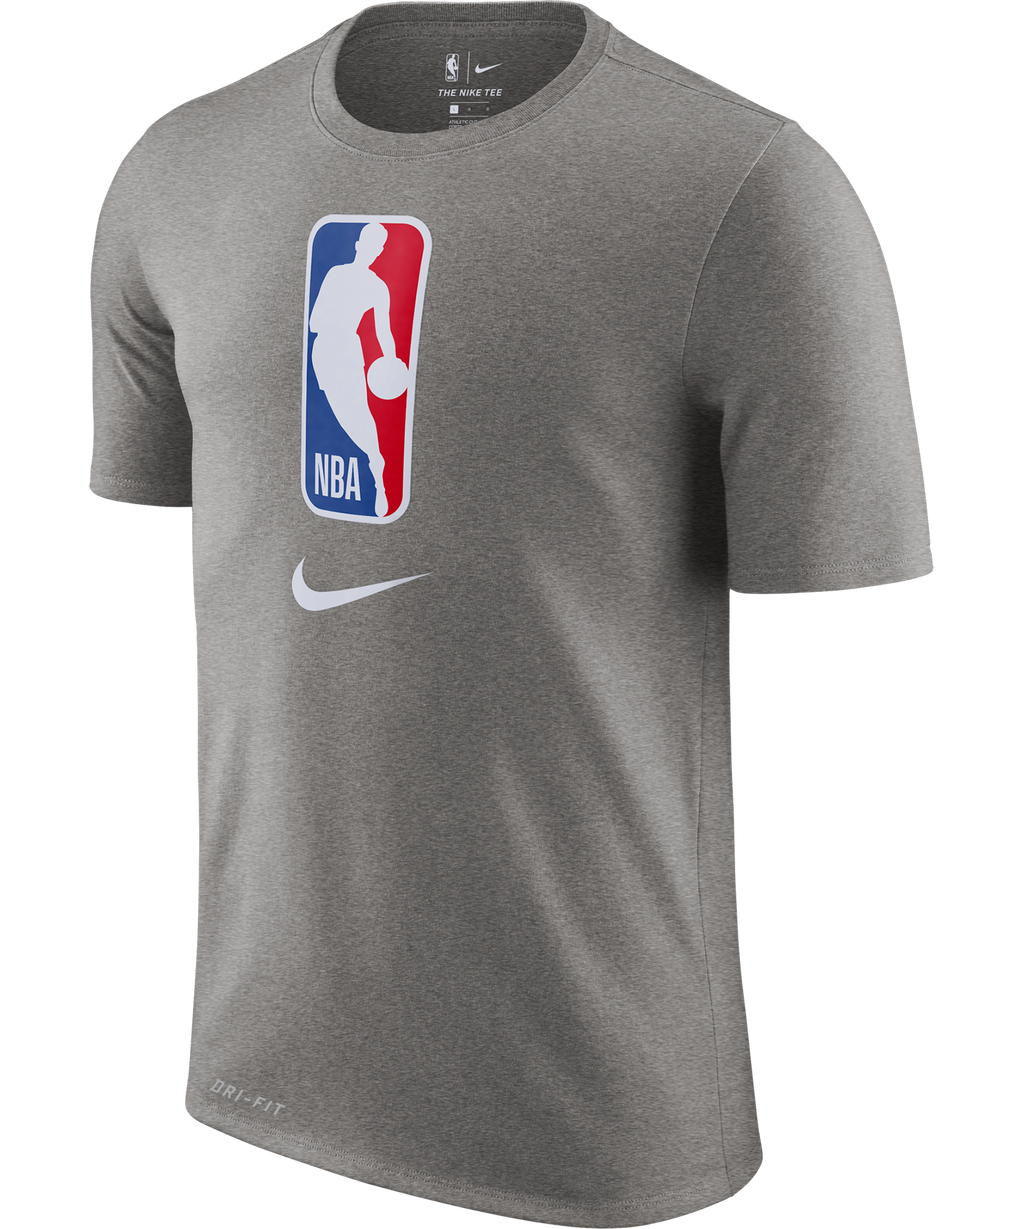 Team 31 Men's Nike Dri-FIT NBA Tee Grey